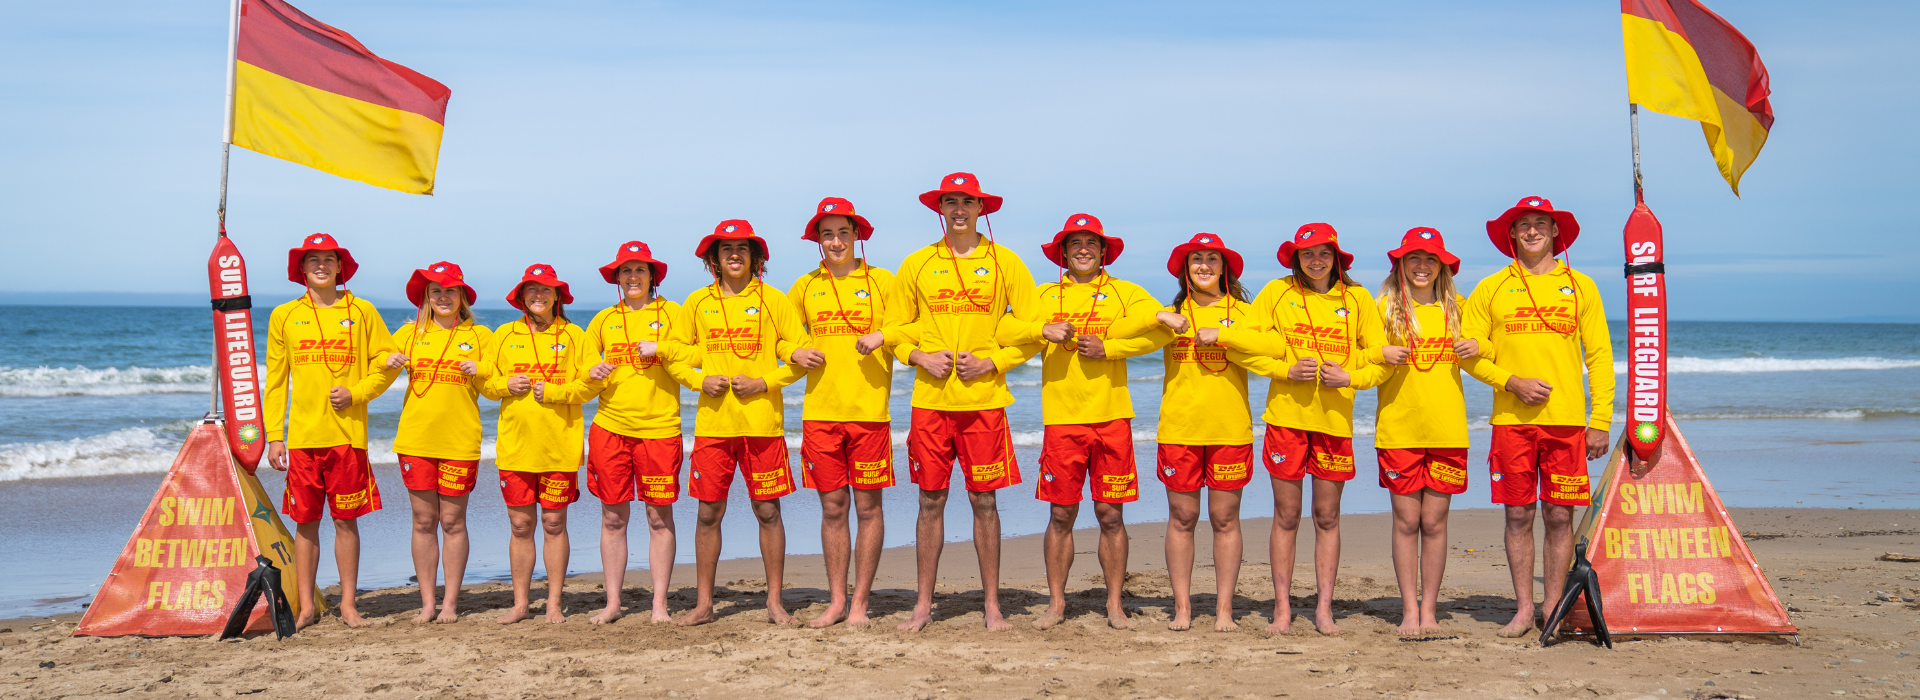 Lifeguards between flags arms together group